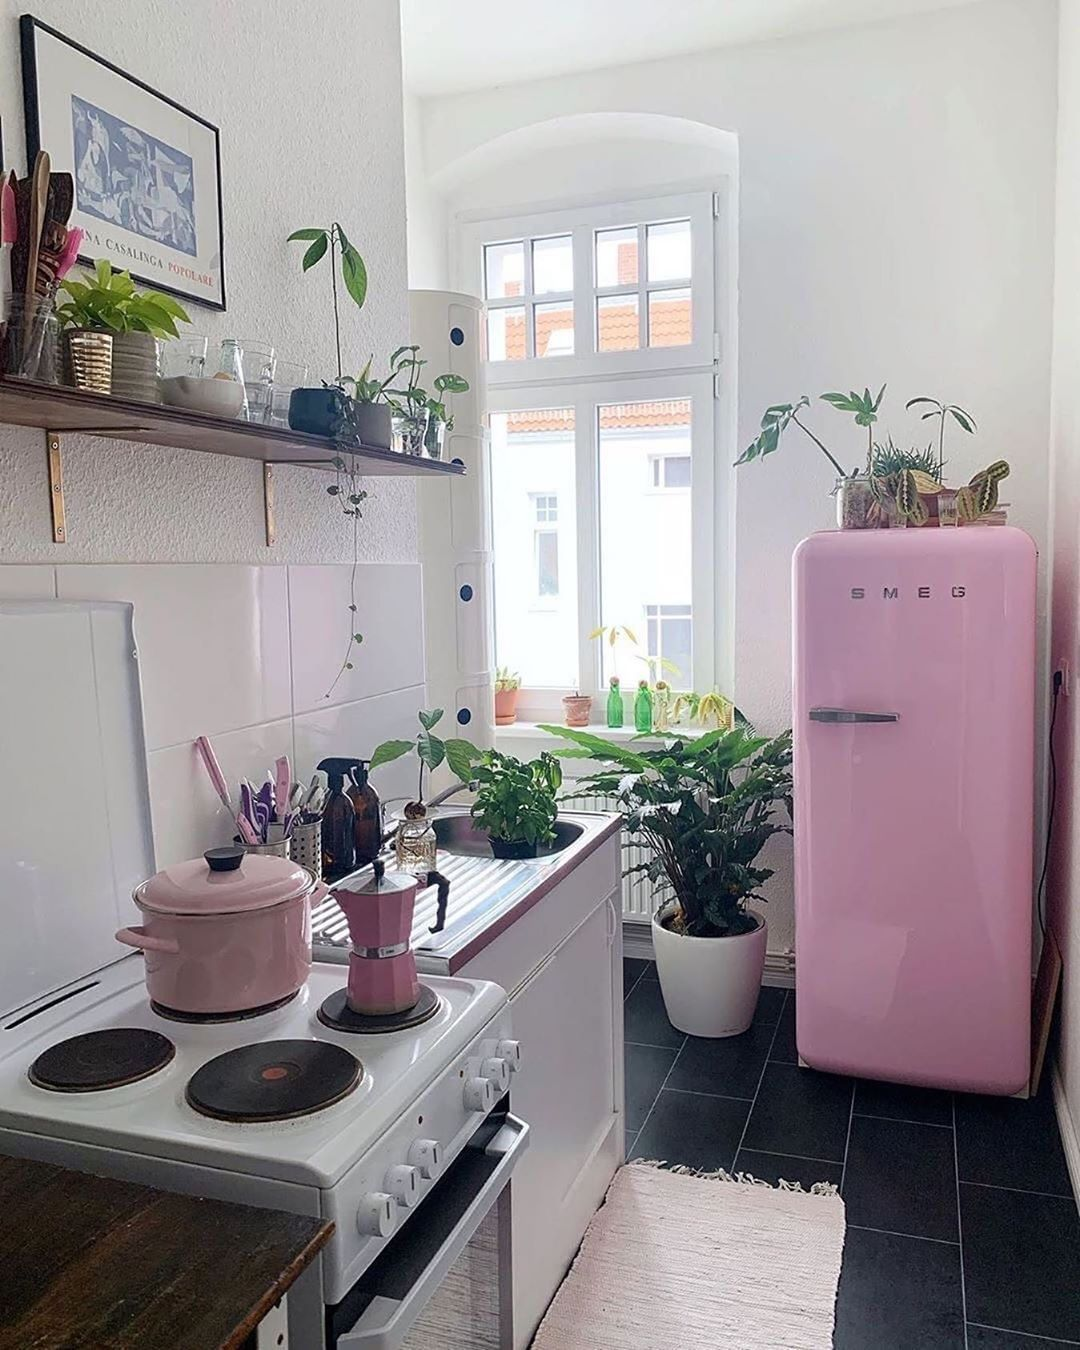 trouva on instagram that pink smeg though berlinhomelove mytrouva on boho chic interior design kitchen id=11459